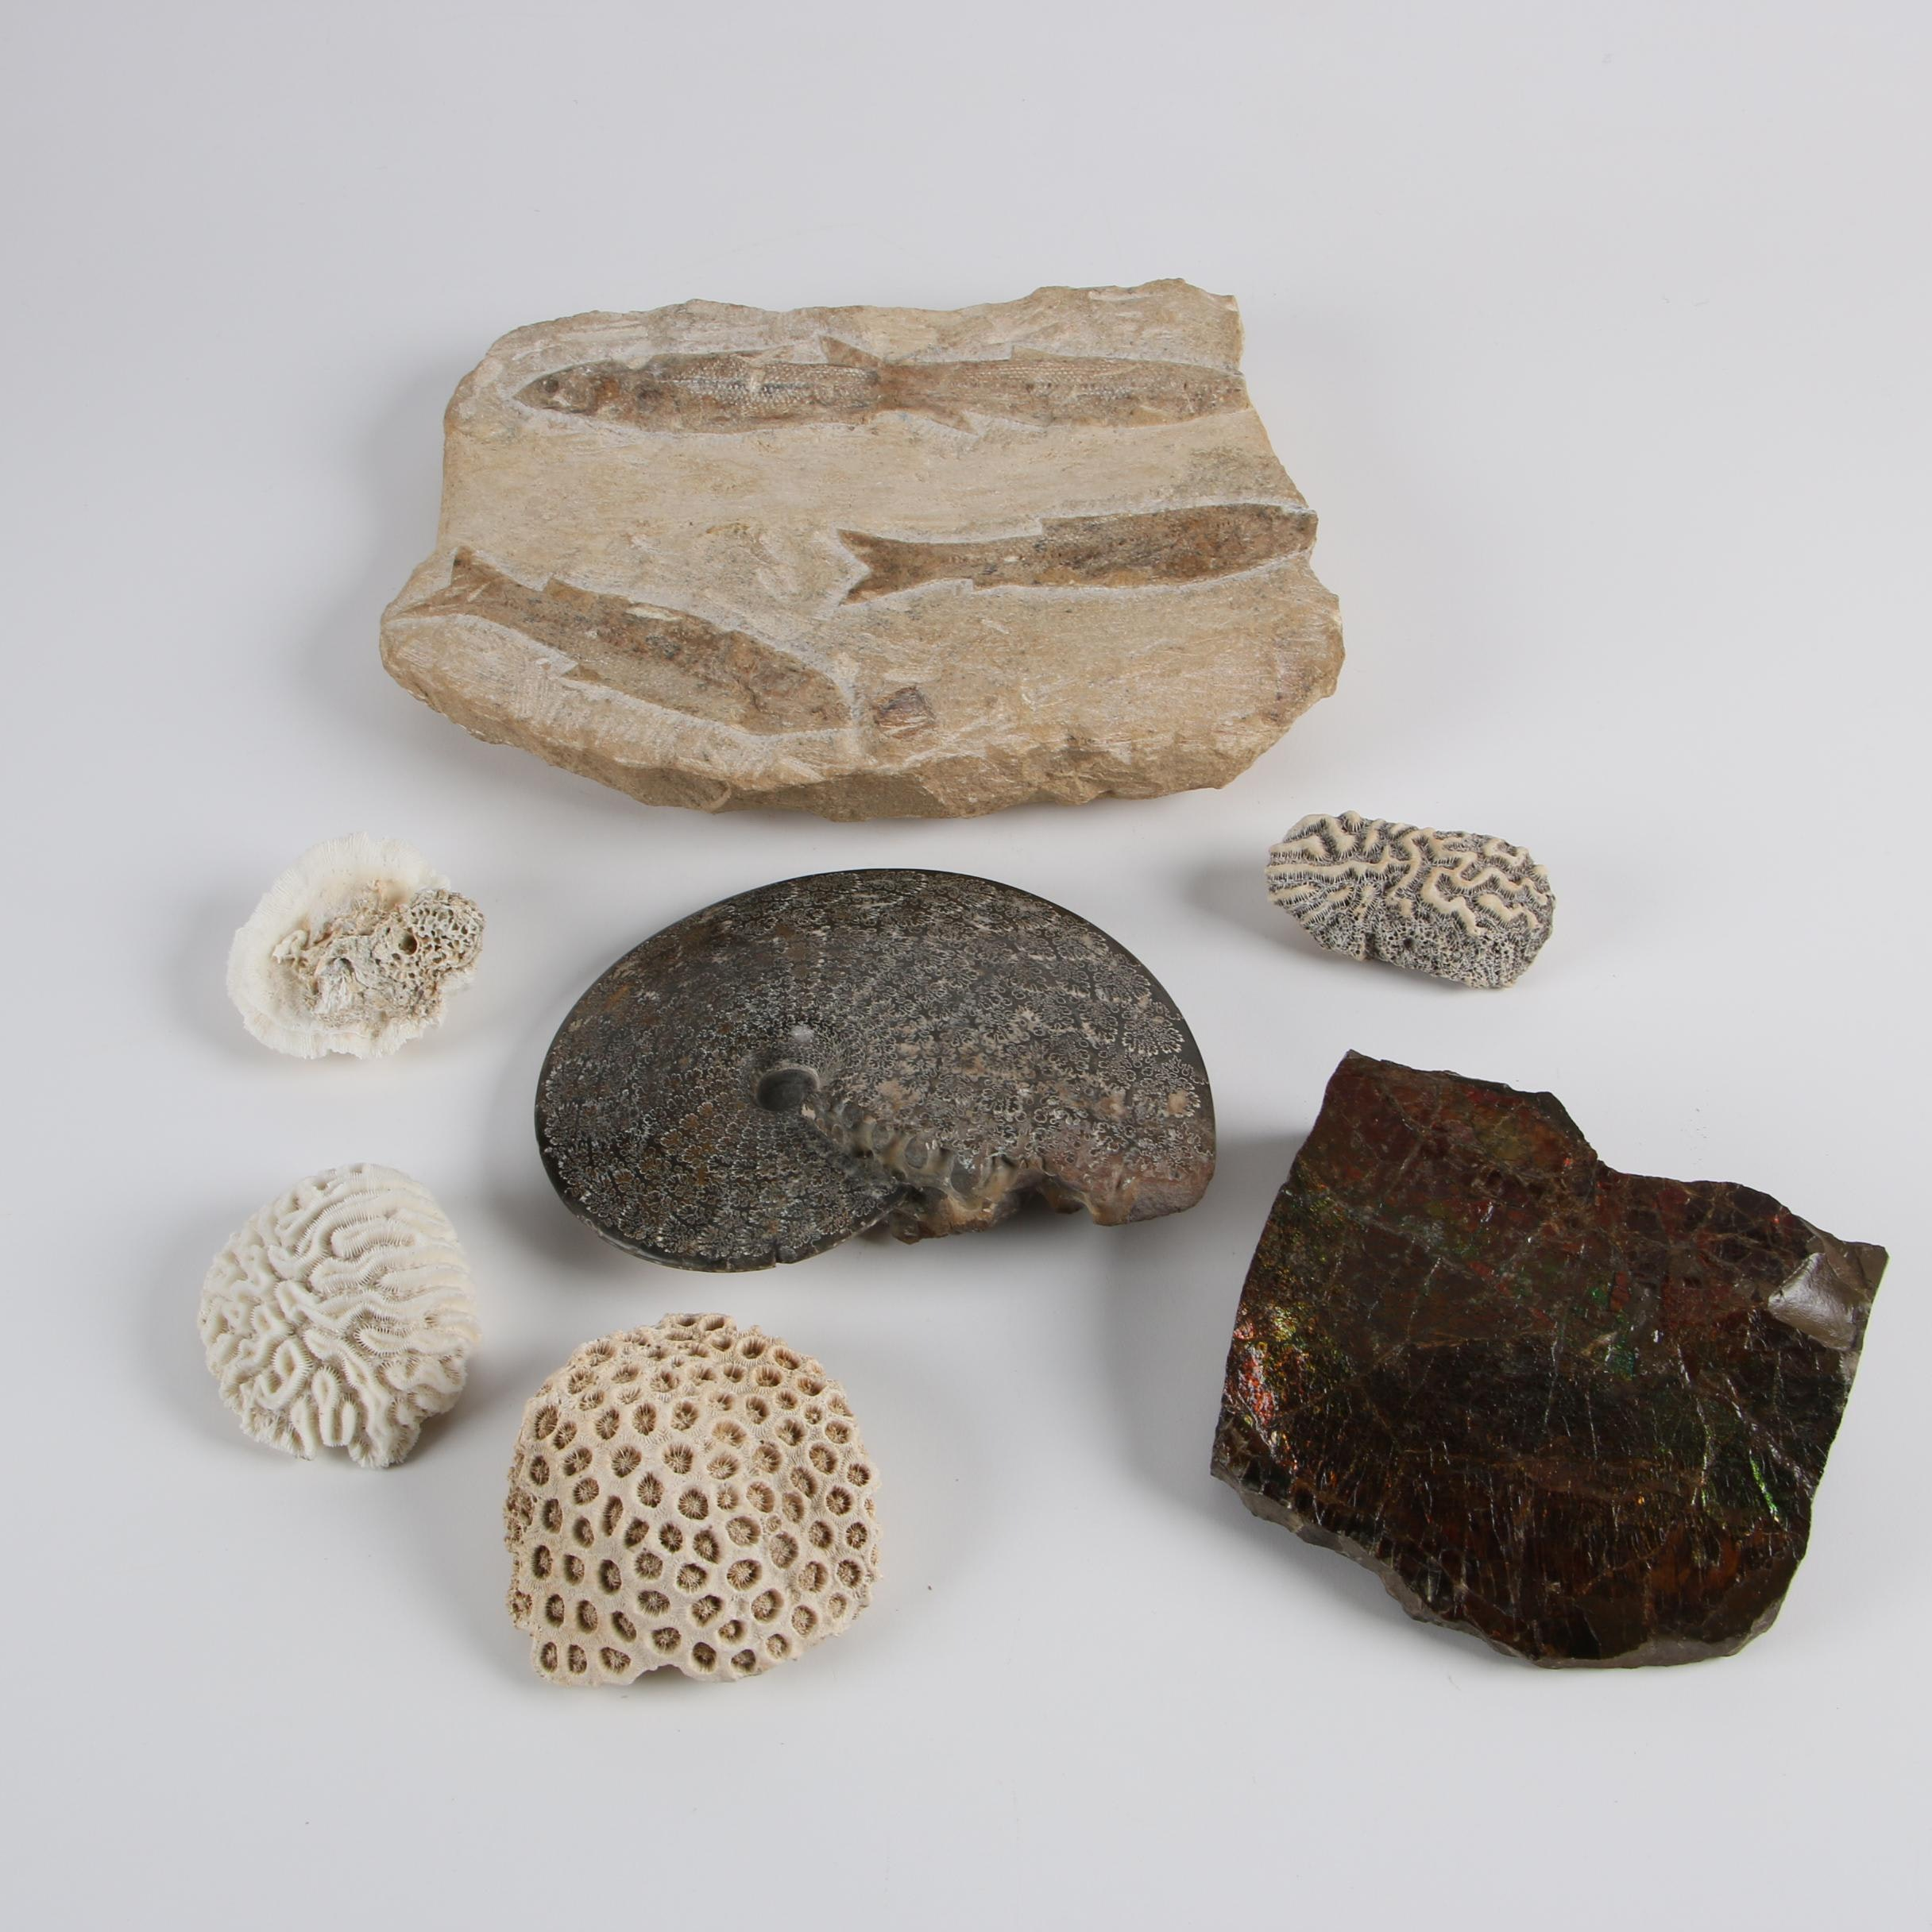 Coral, Fish and Ammonite Fossil Specimens and More